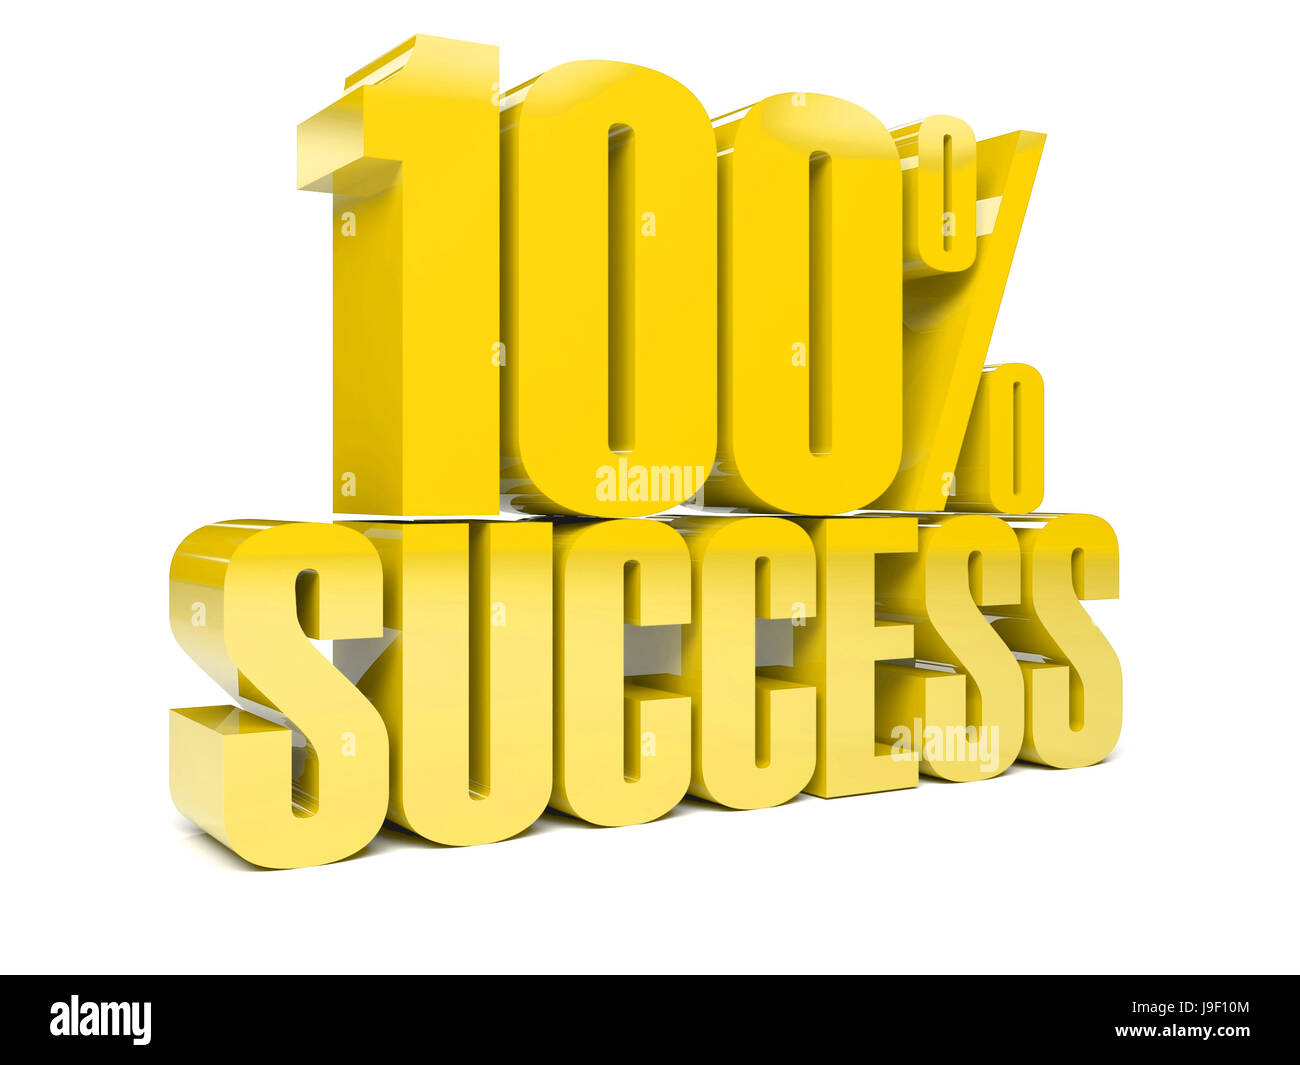 3d text 100 percent success concept illustration stock photo 3d text 100 percent success concept illustration buycottarizona Image collections